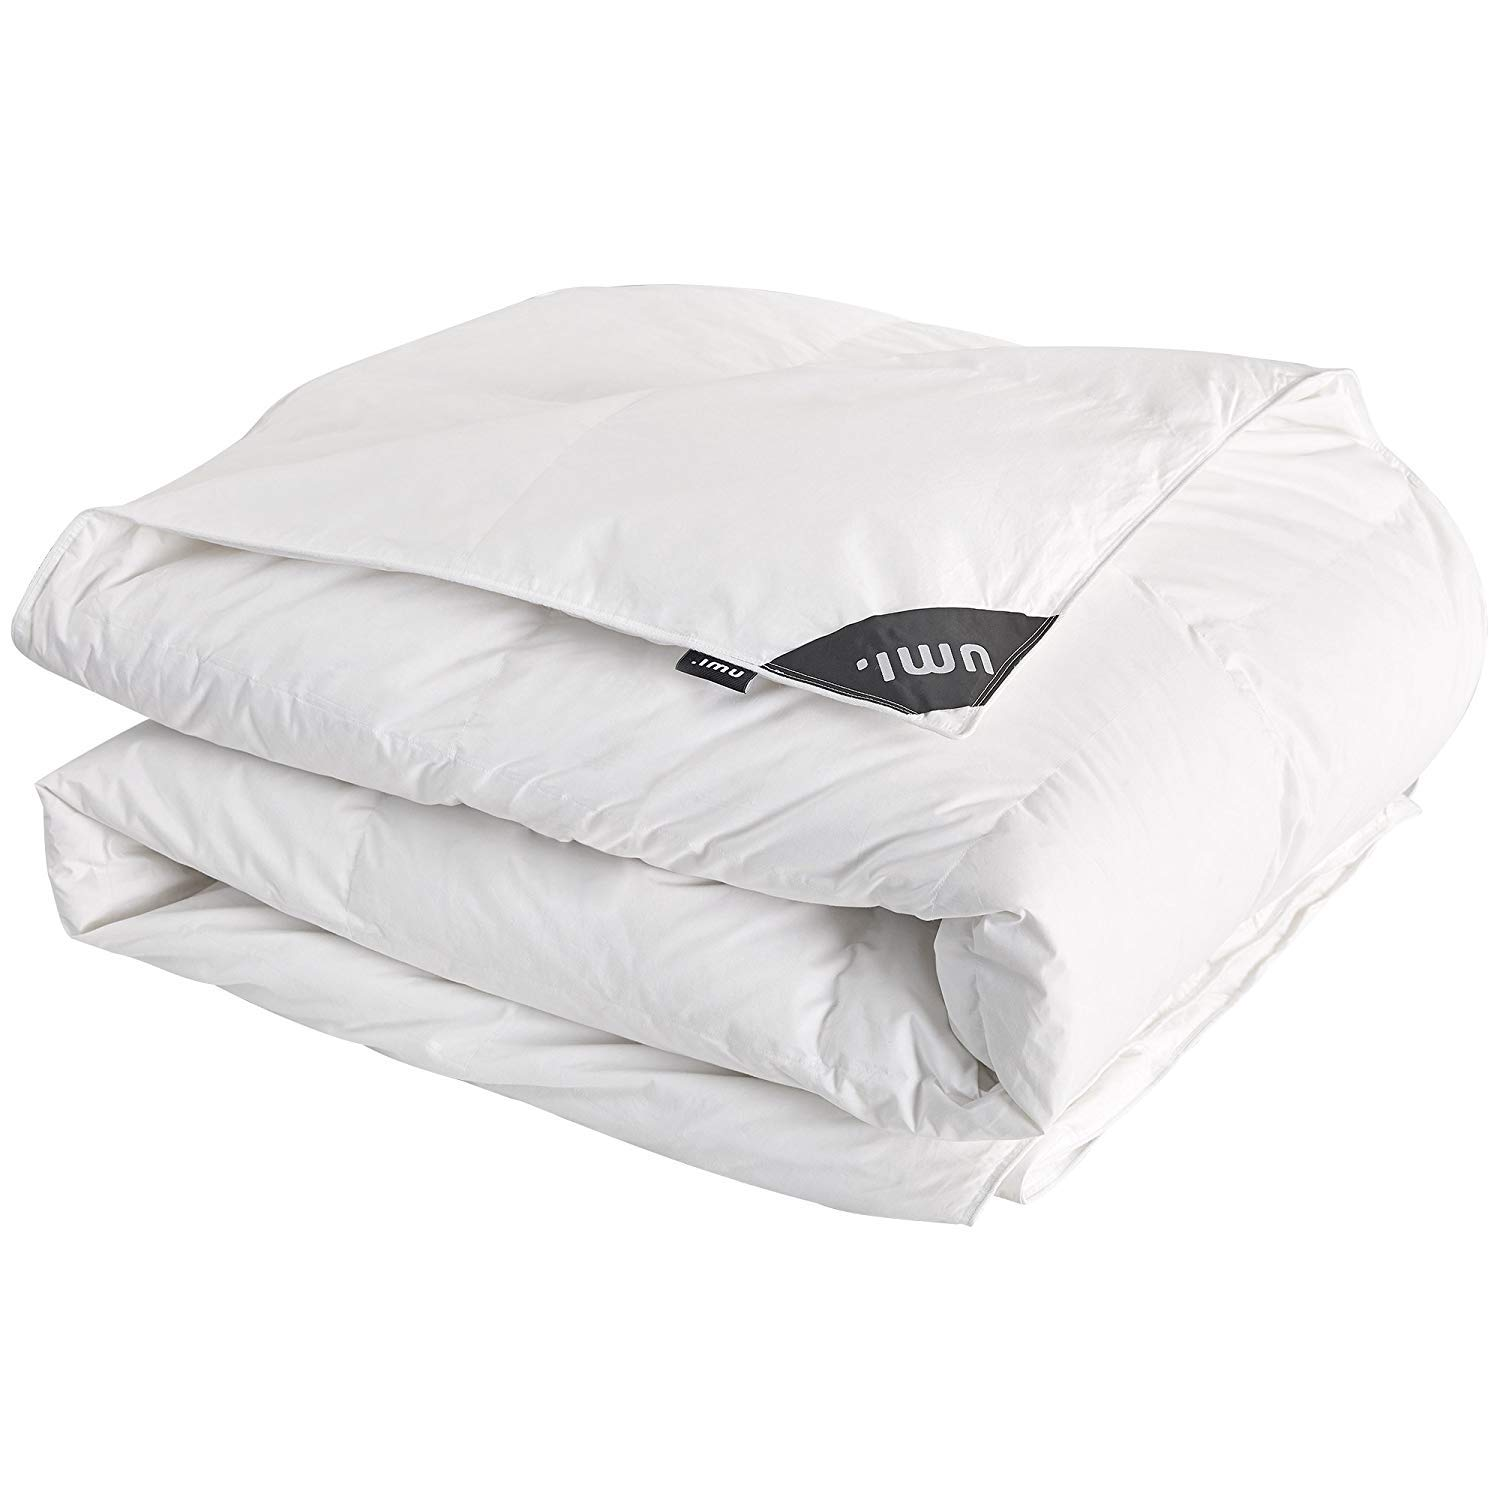 Umi. Essentials Luxury White Goose Feather and Down Extra Warmth Duvet, All Season ,10.5 Tog King Size 225x220cm